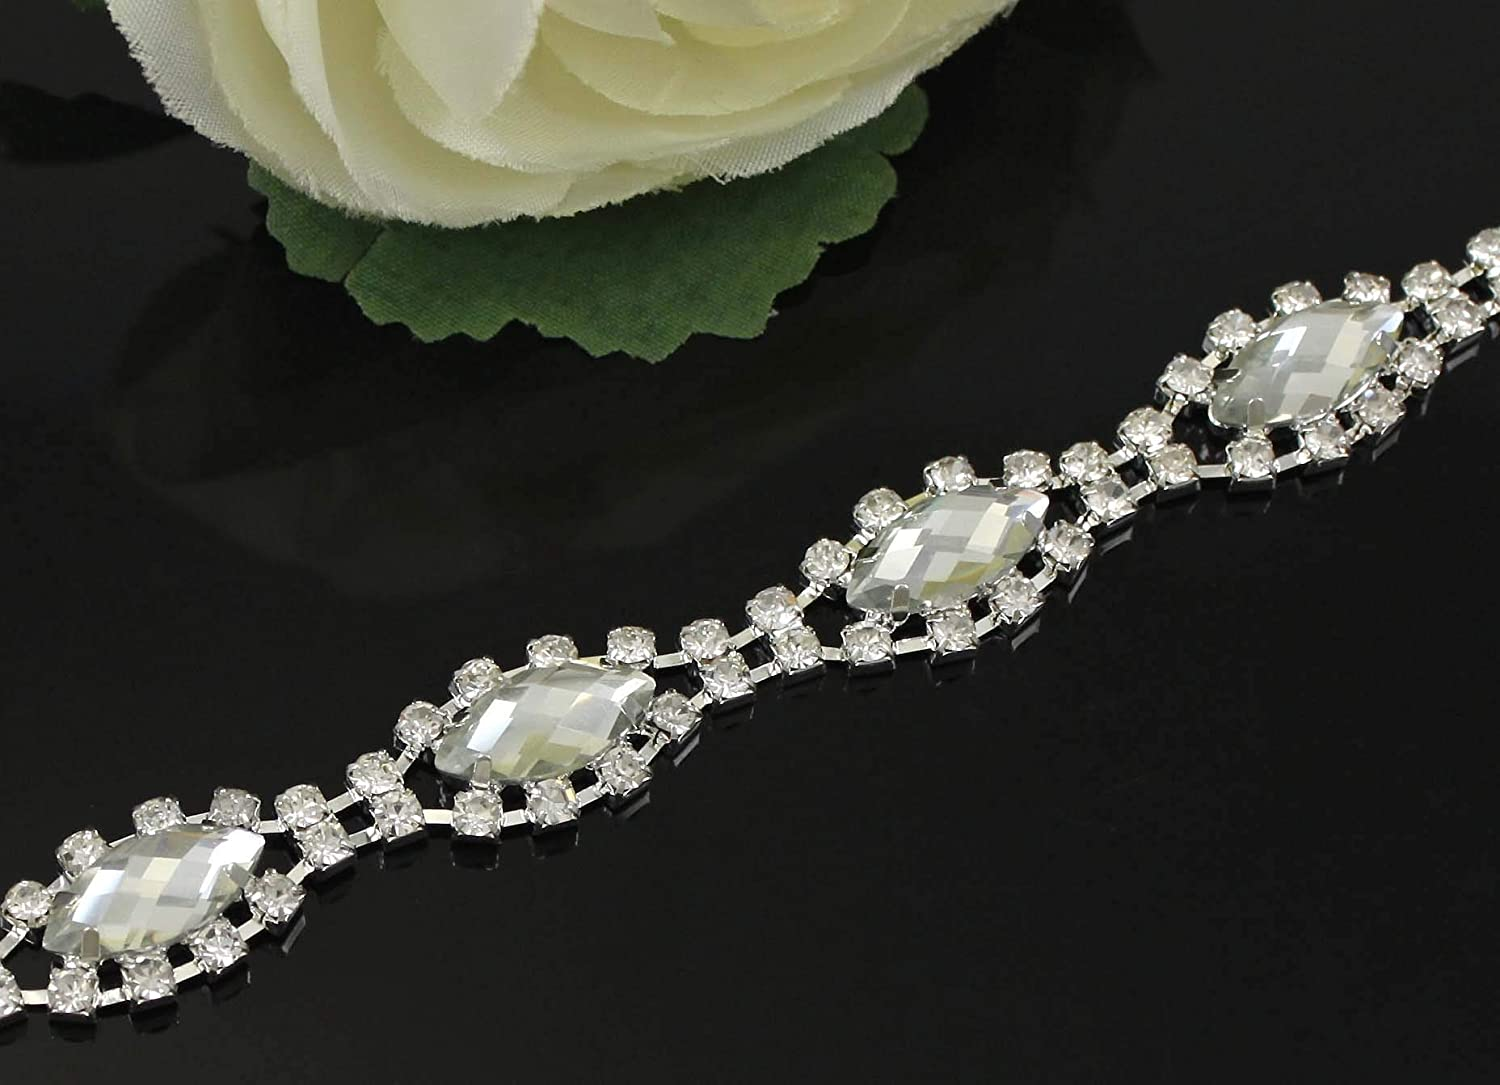 Xuccus 5Yards 888 Glass Rhinestone Limited Max 40% OFF time for free shipping Silver We Chain Trimming Trim